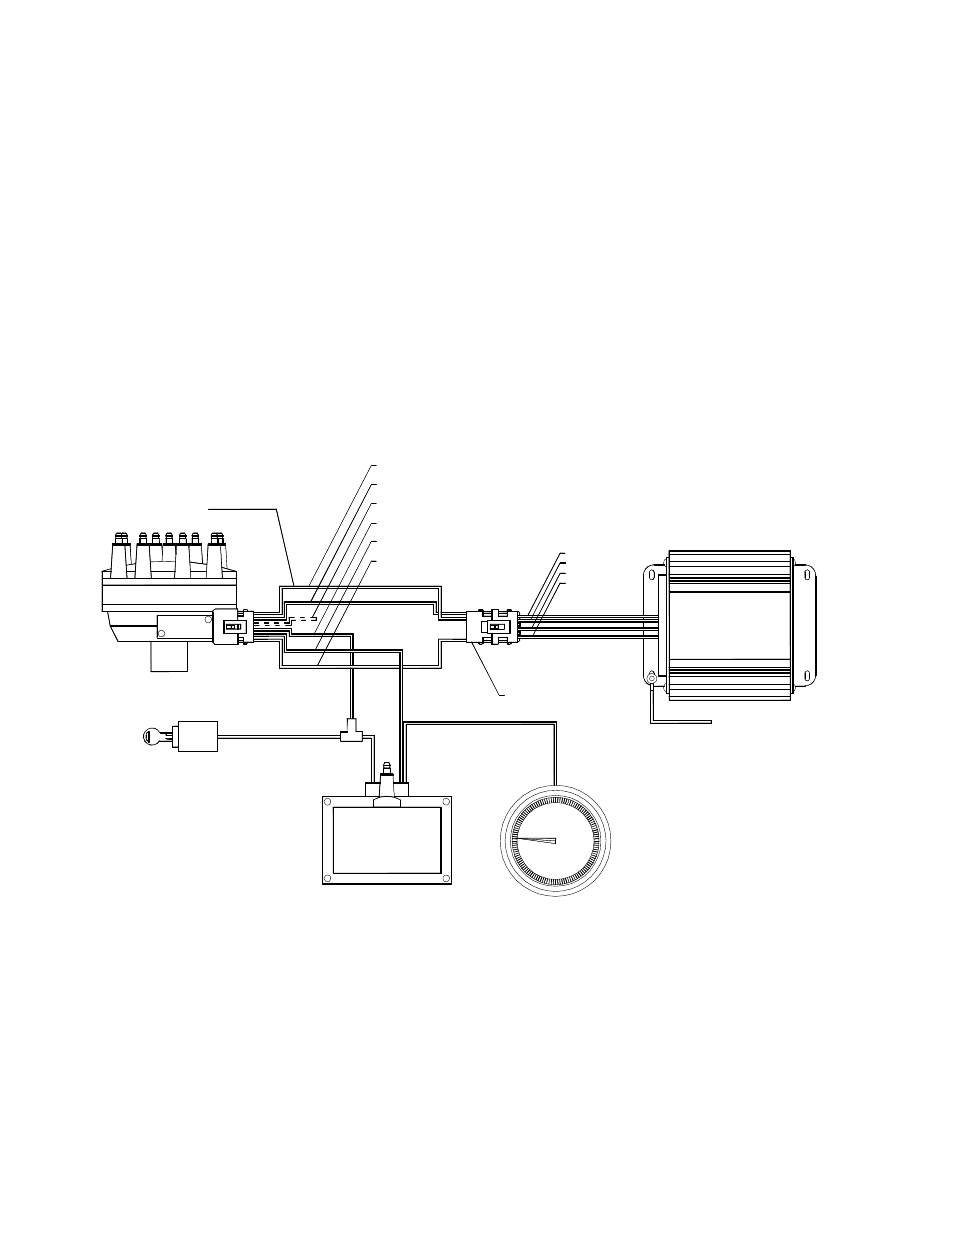 Ford Tfi Ignition Wiring Diagram Library Msd 6a Digital 6al Appendix 10 Diagrams Figure 61 Holley Commander 950 User Manual Page 84